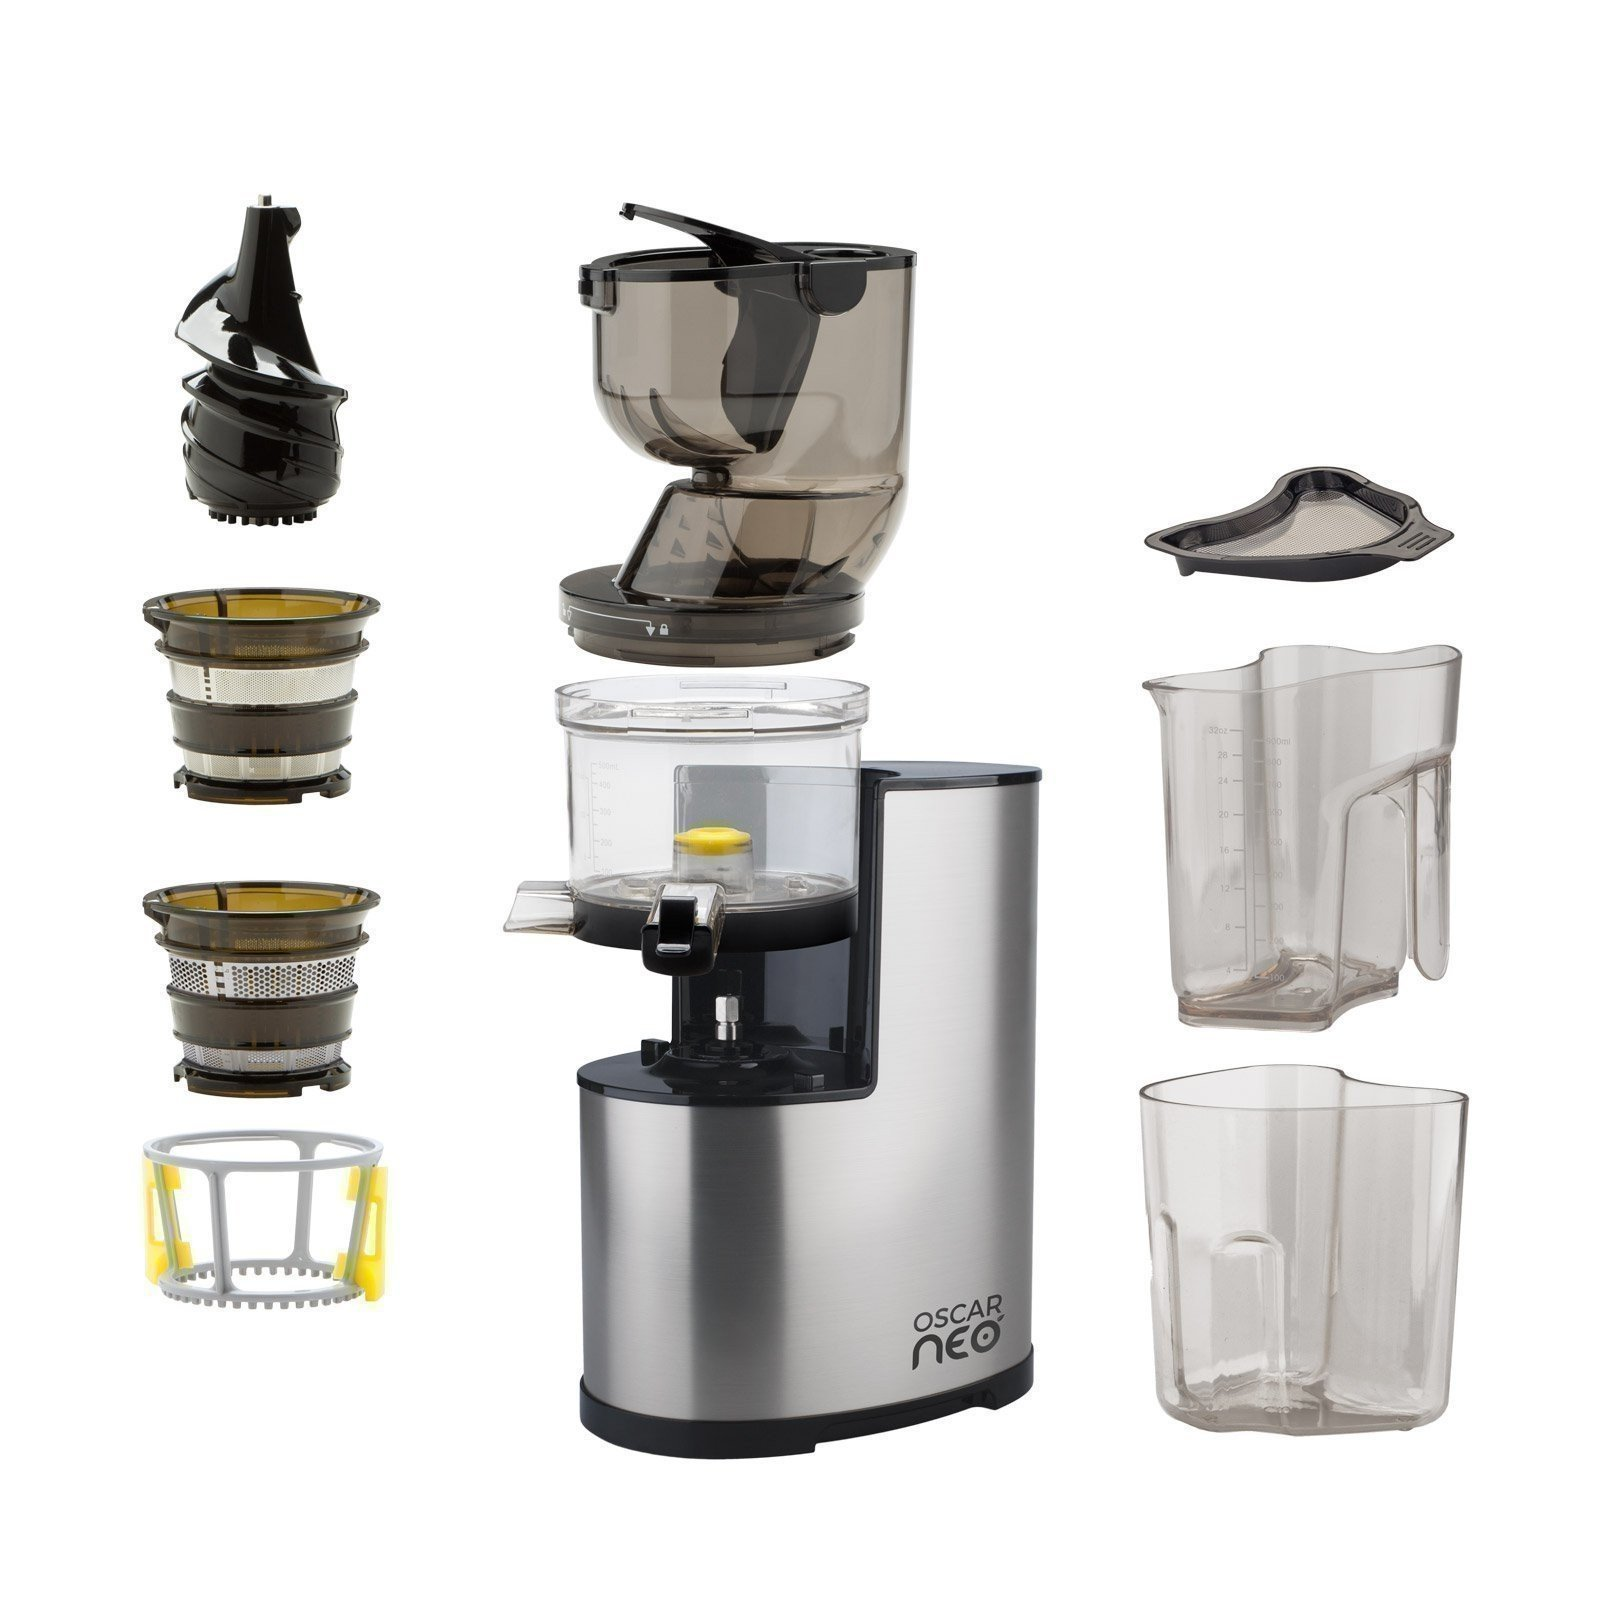 Caso Slow Juicer Review : Oscar Neo XL Whole Slow Juicer - vitality 4 Life